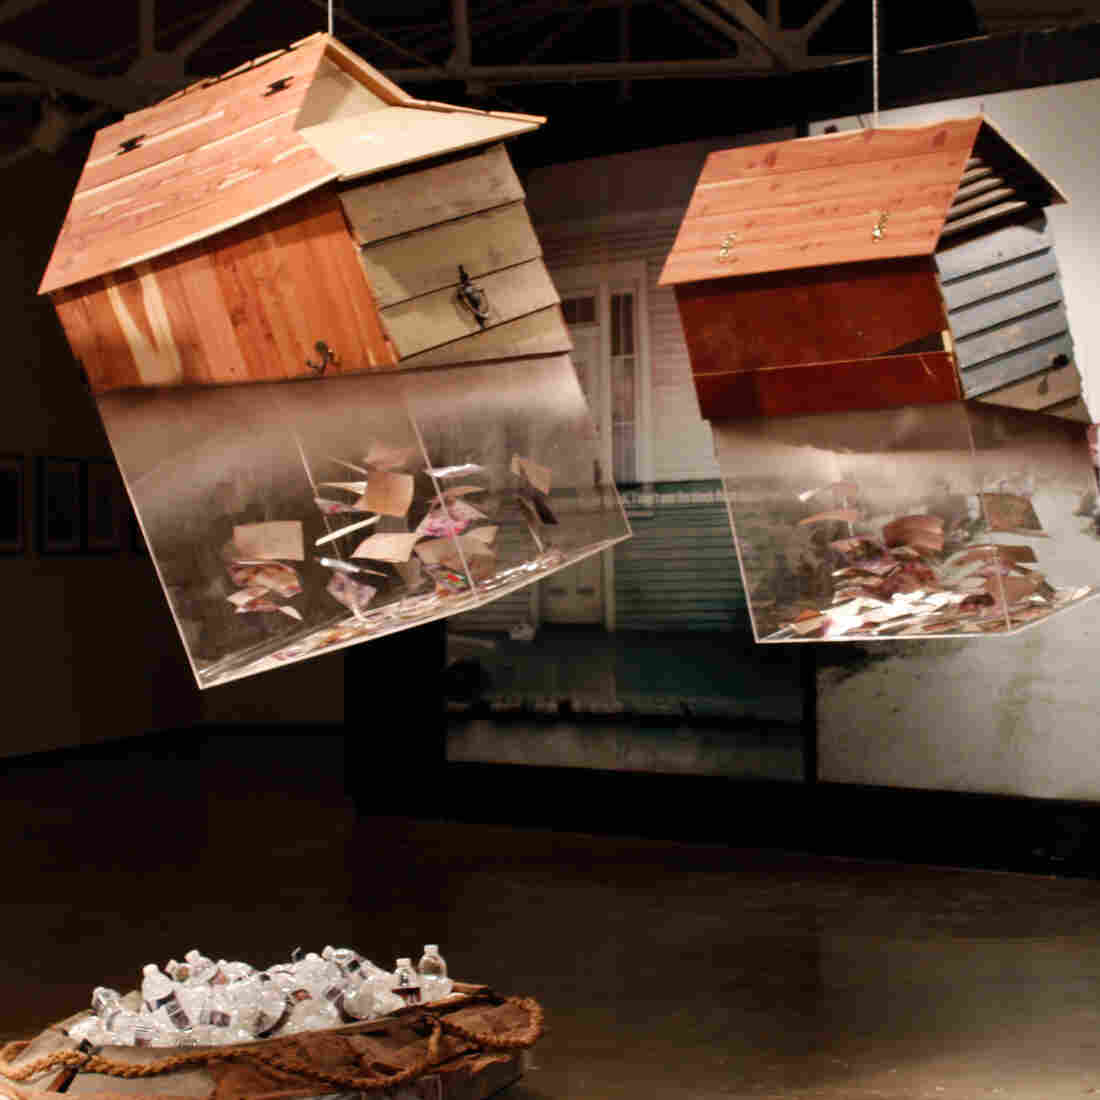 After Katrina, New Artists Found Inspiration In A Recovering City